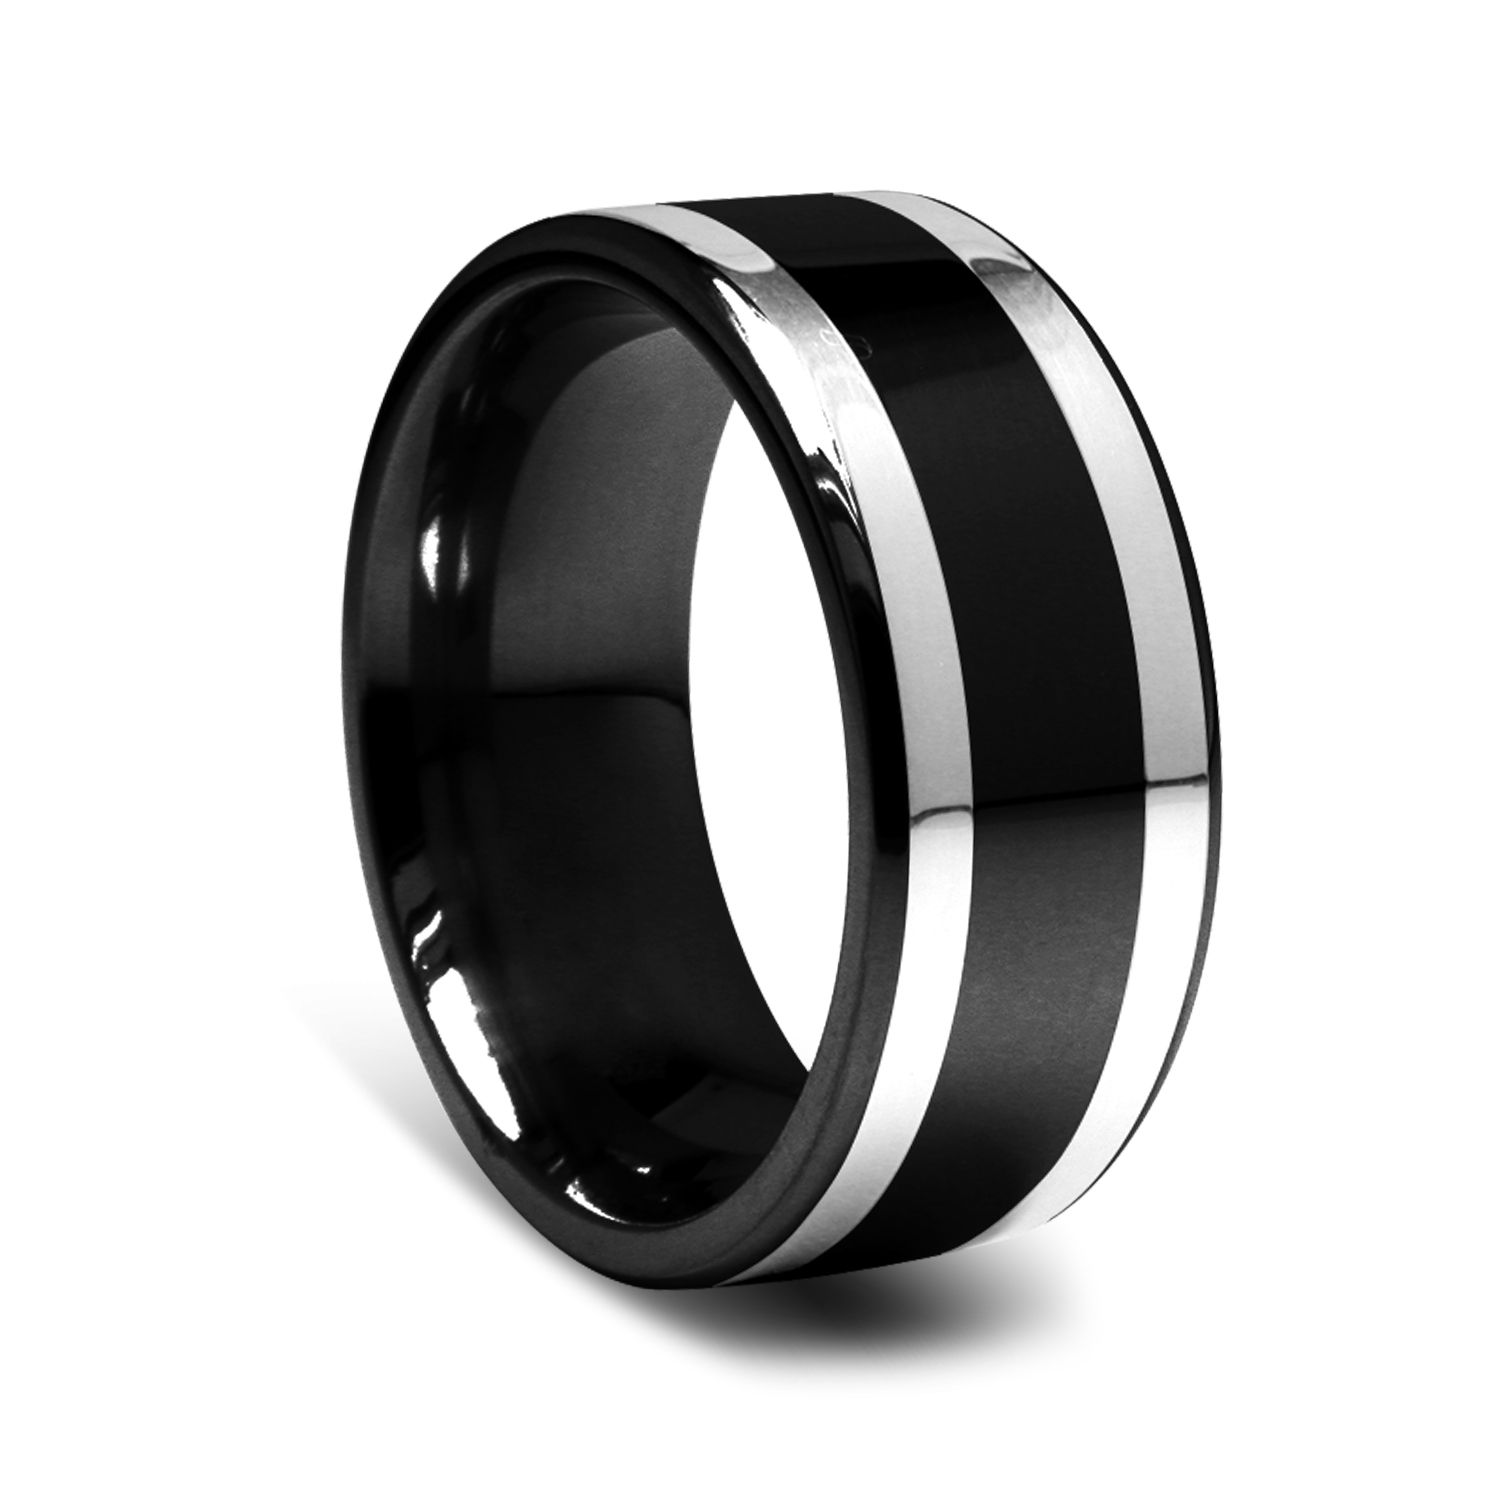 download wedding by bands ring the now trending most male desktop size thing is men original rings designs for handphone band tablet